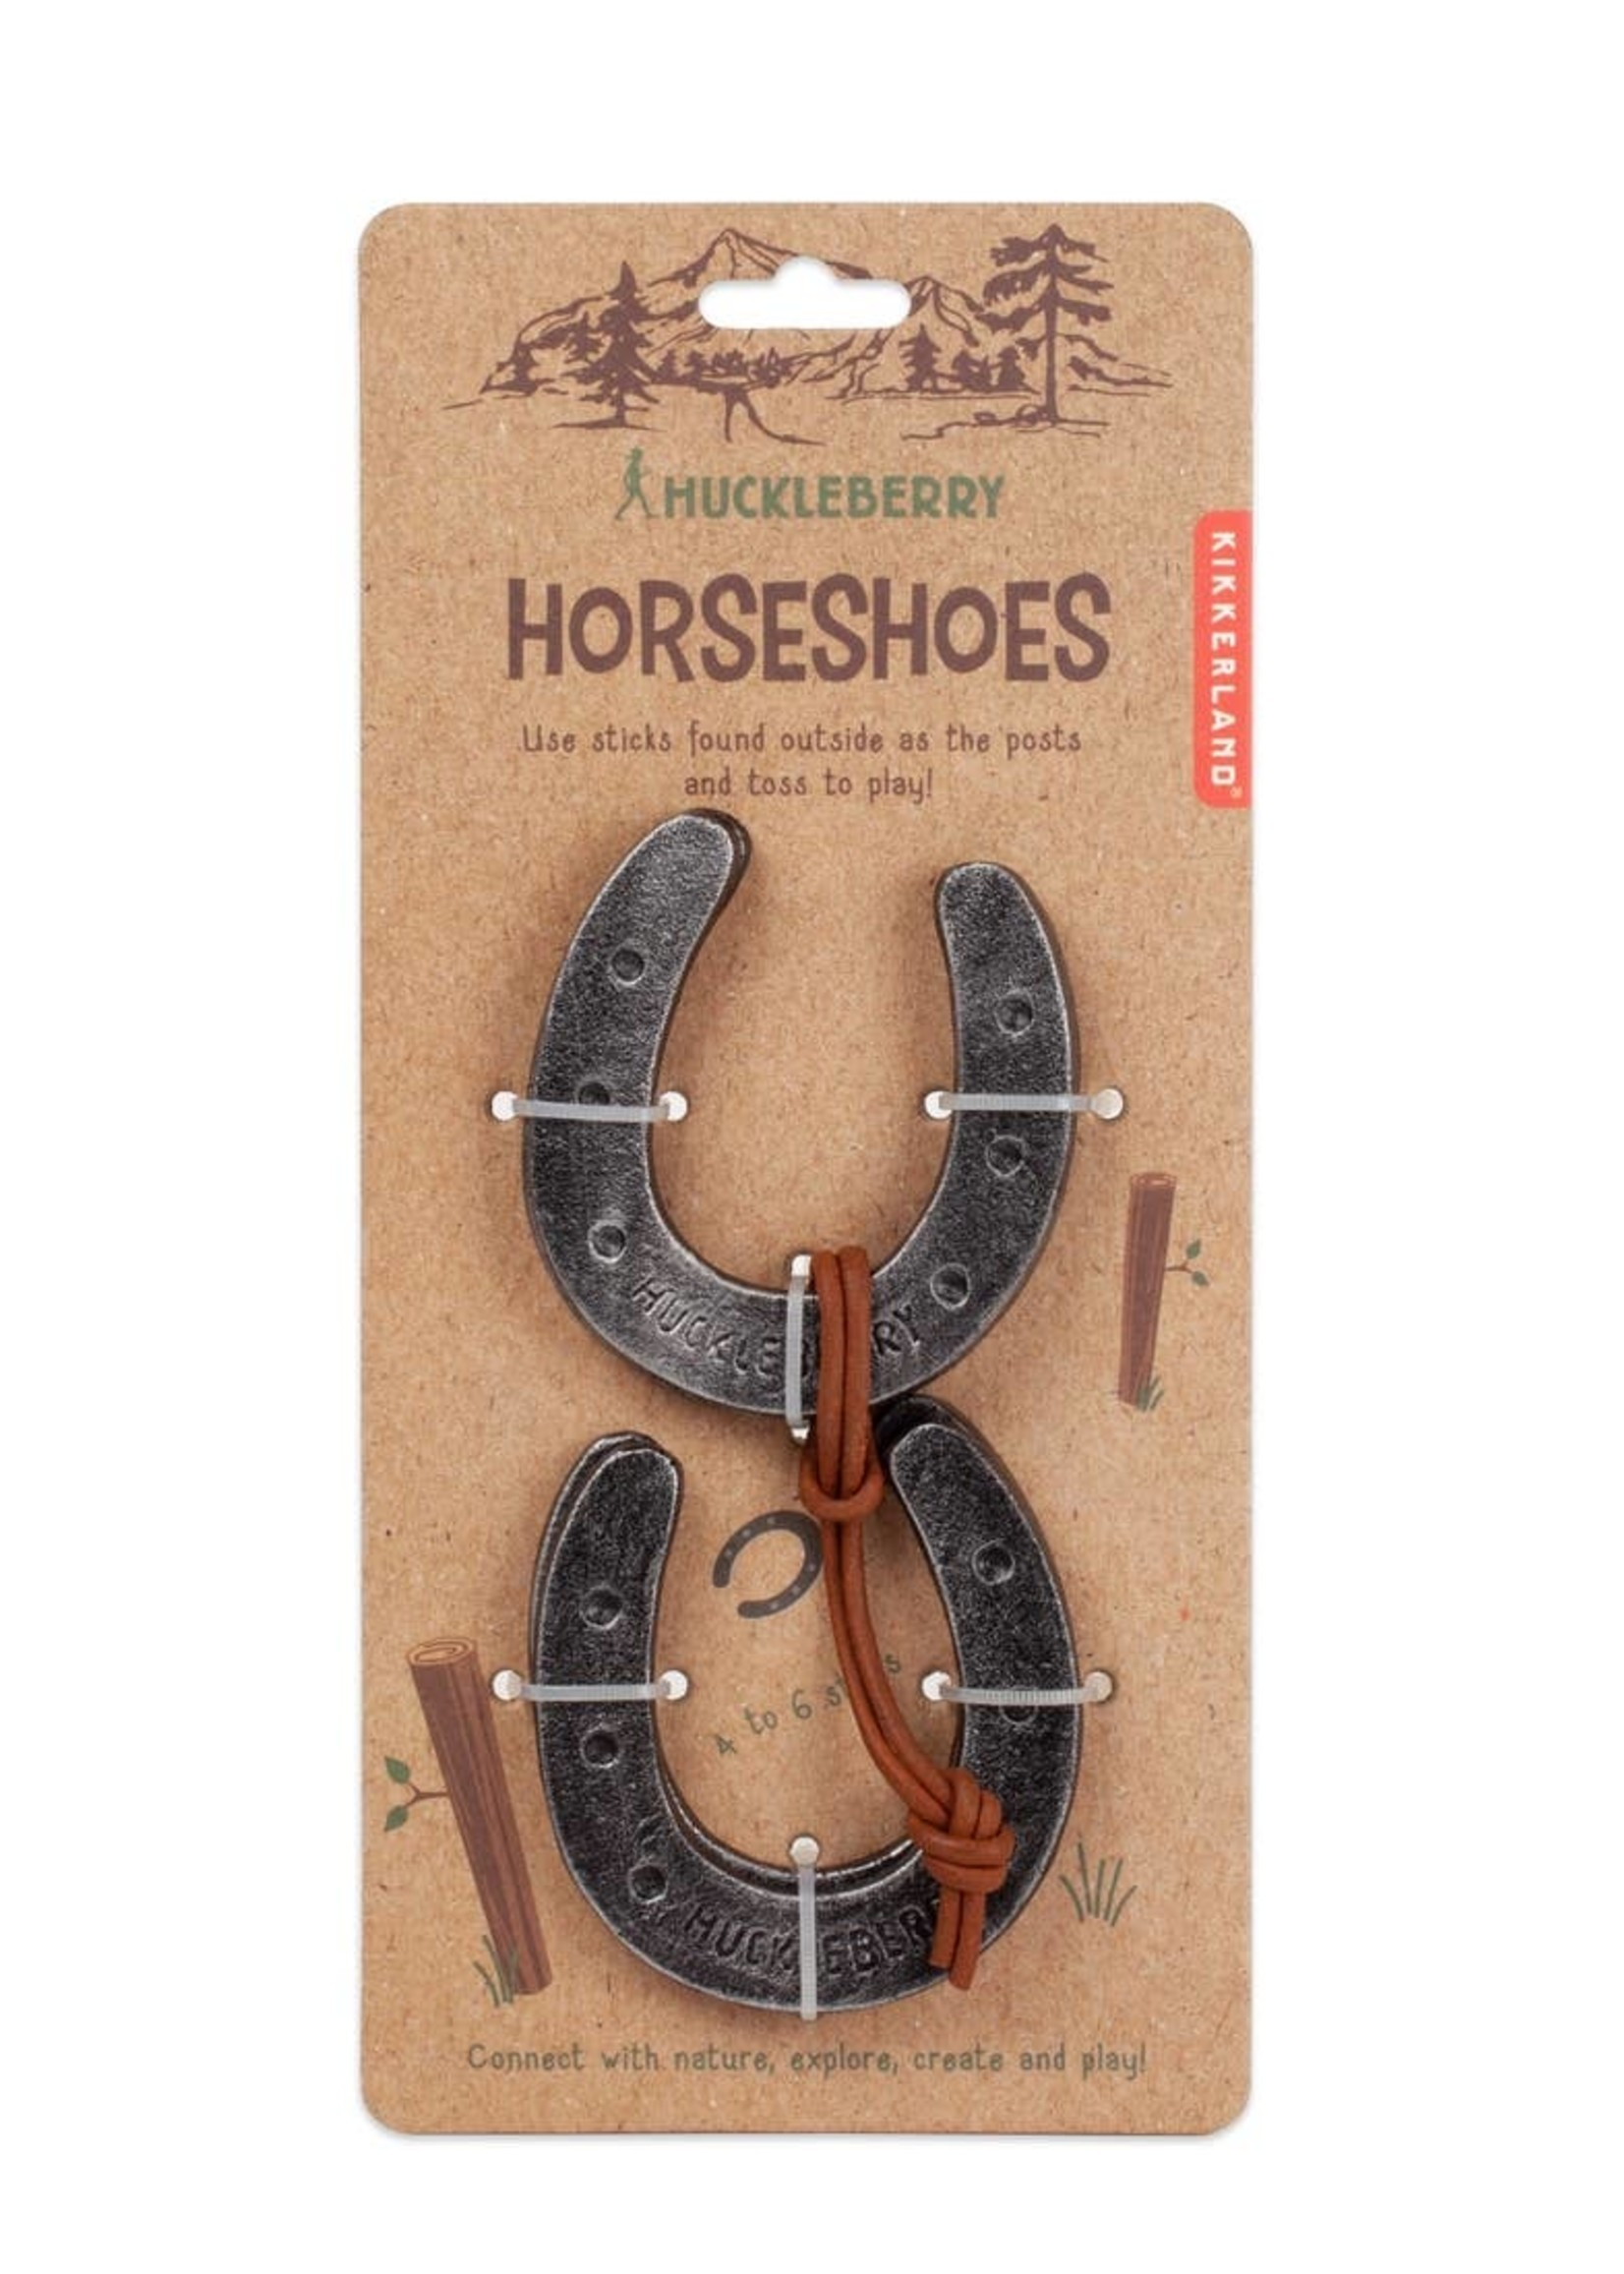 huckleberry by kirkland Horseshoes